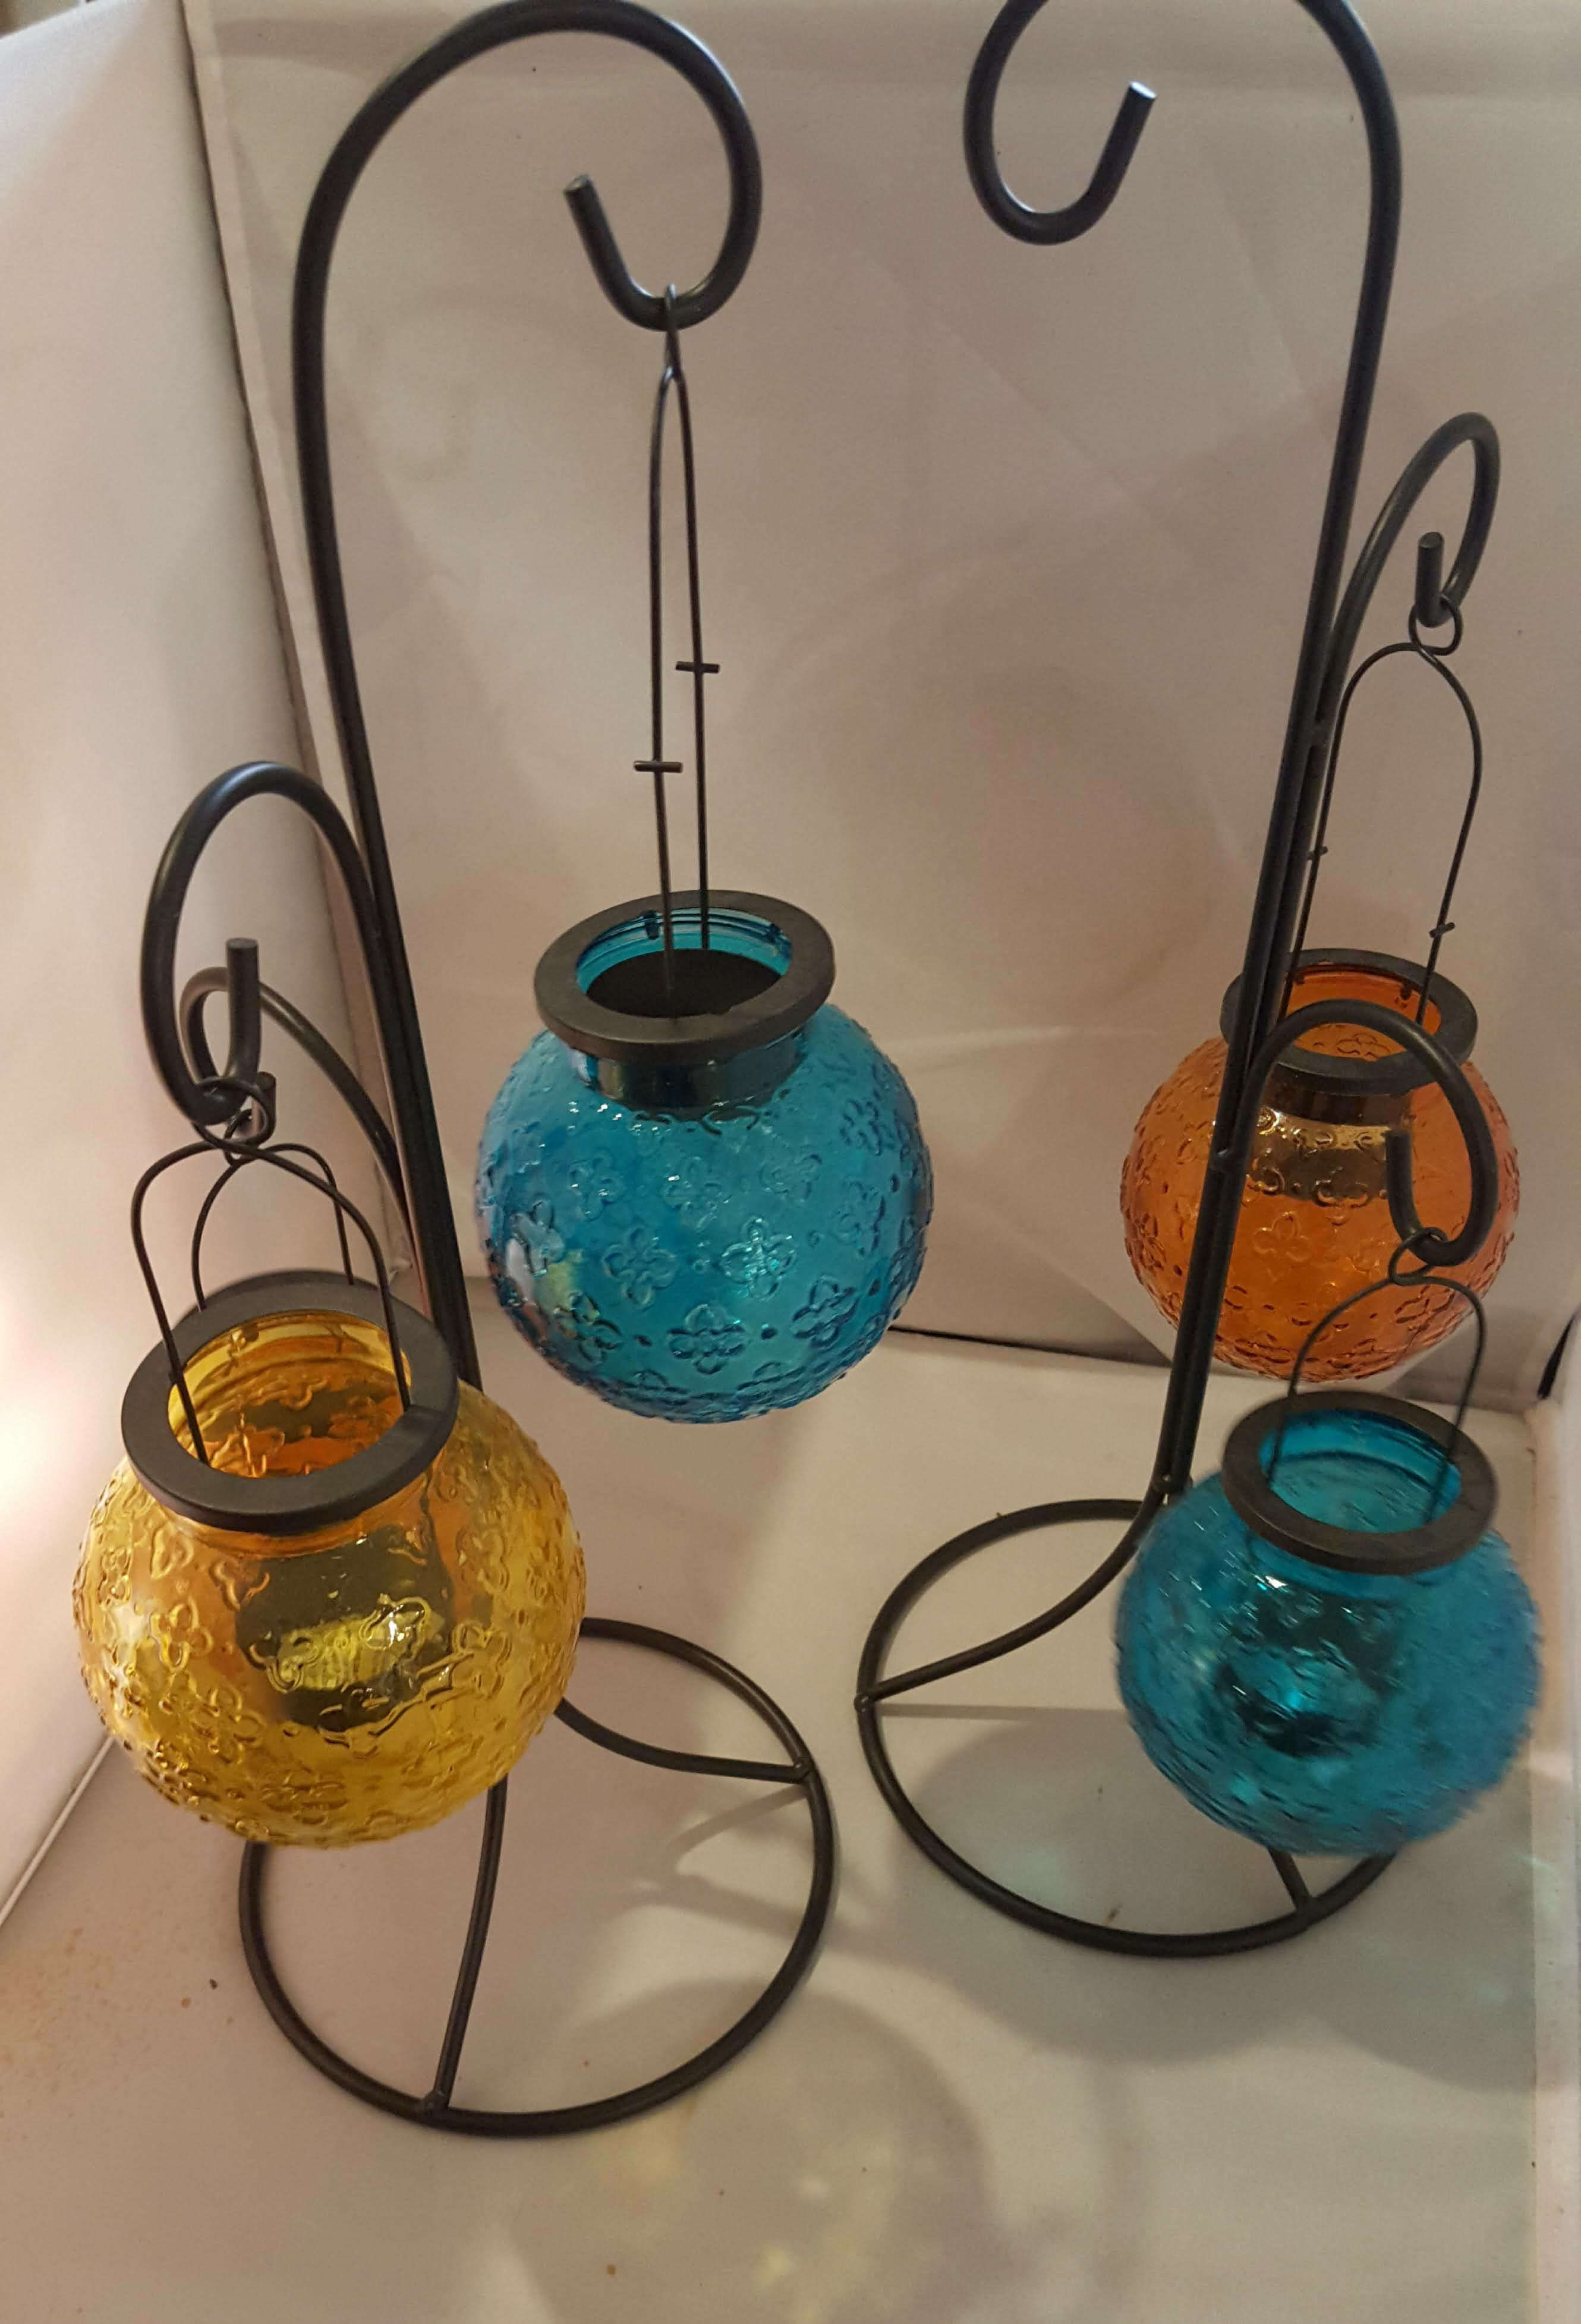 Pair-of-3-Tier-Hanging-Colored-Glass-Votive-Candle-Holders_164850A.jpg